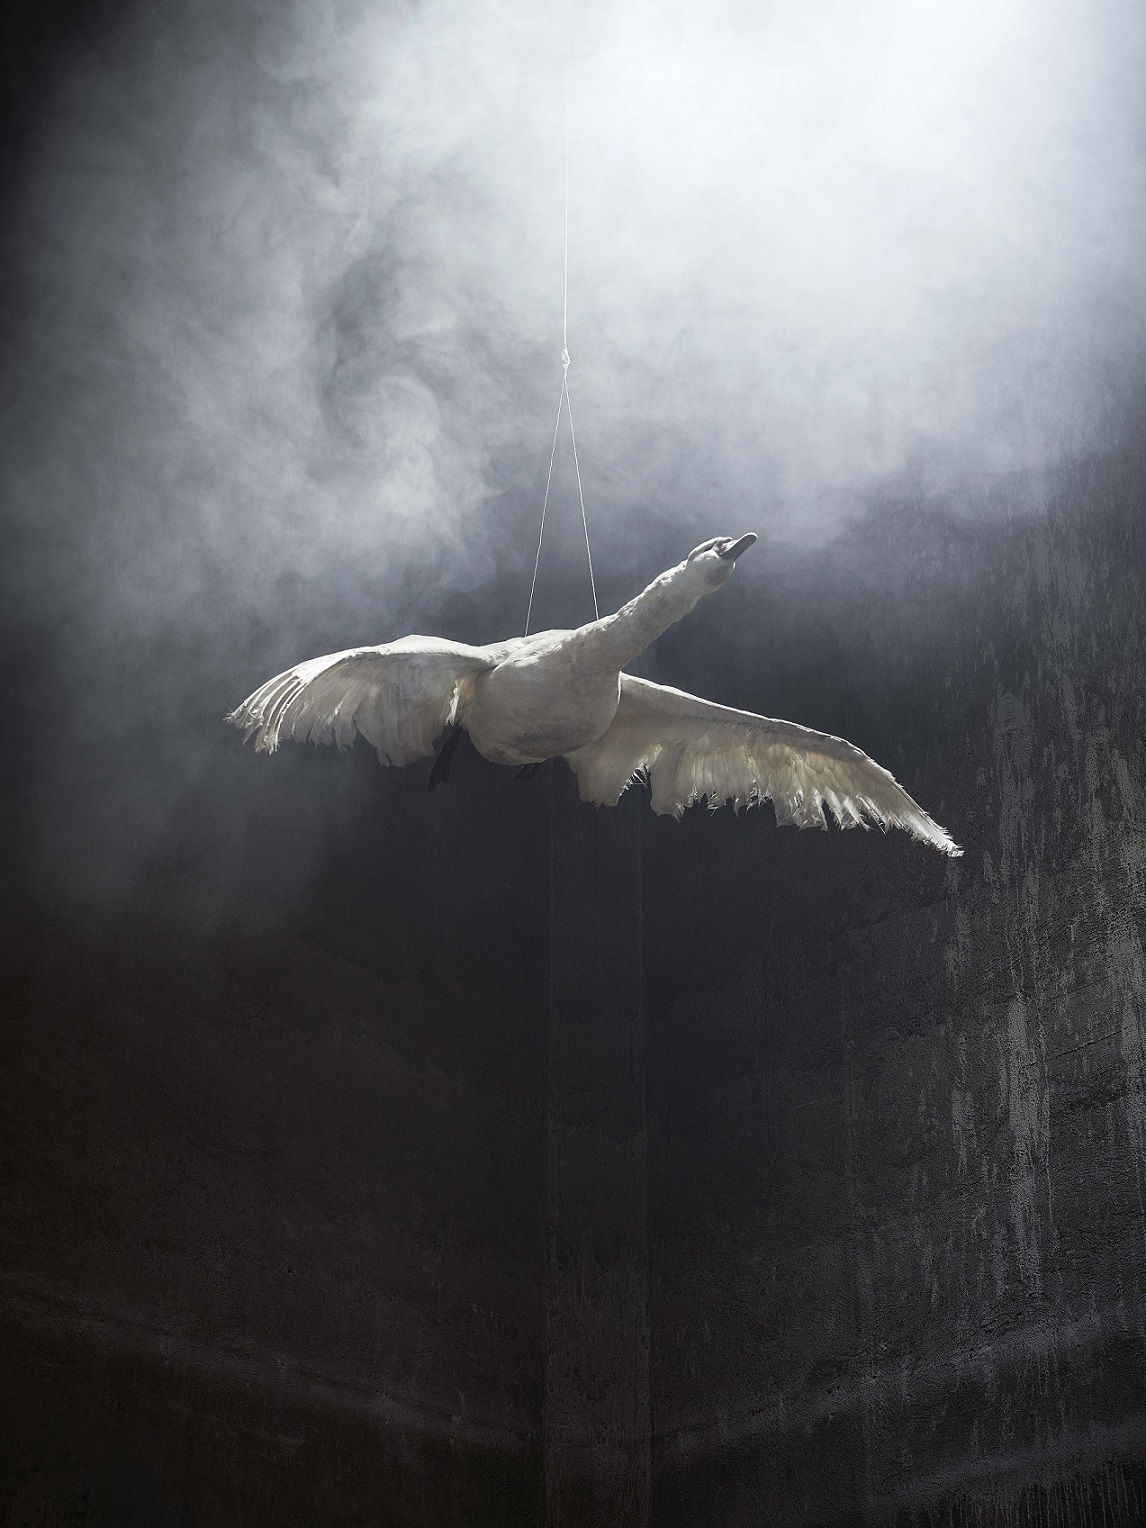 Swan in Flight 2, série Residence of Impermanence